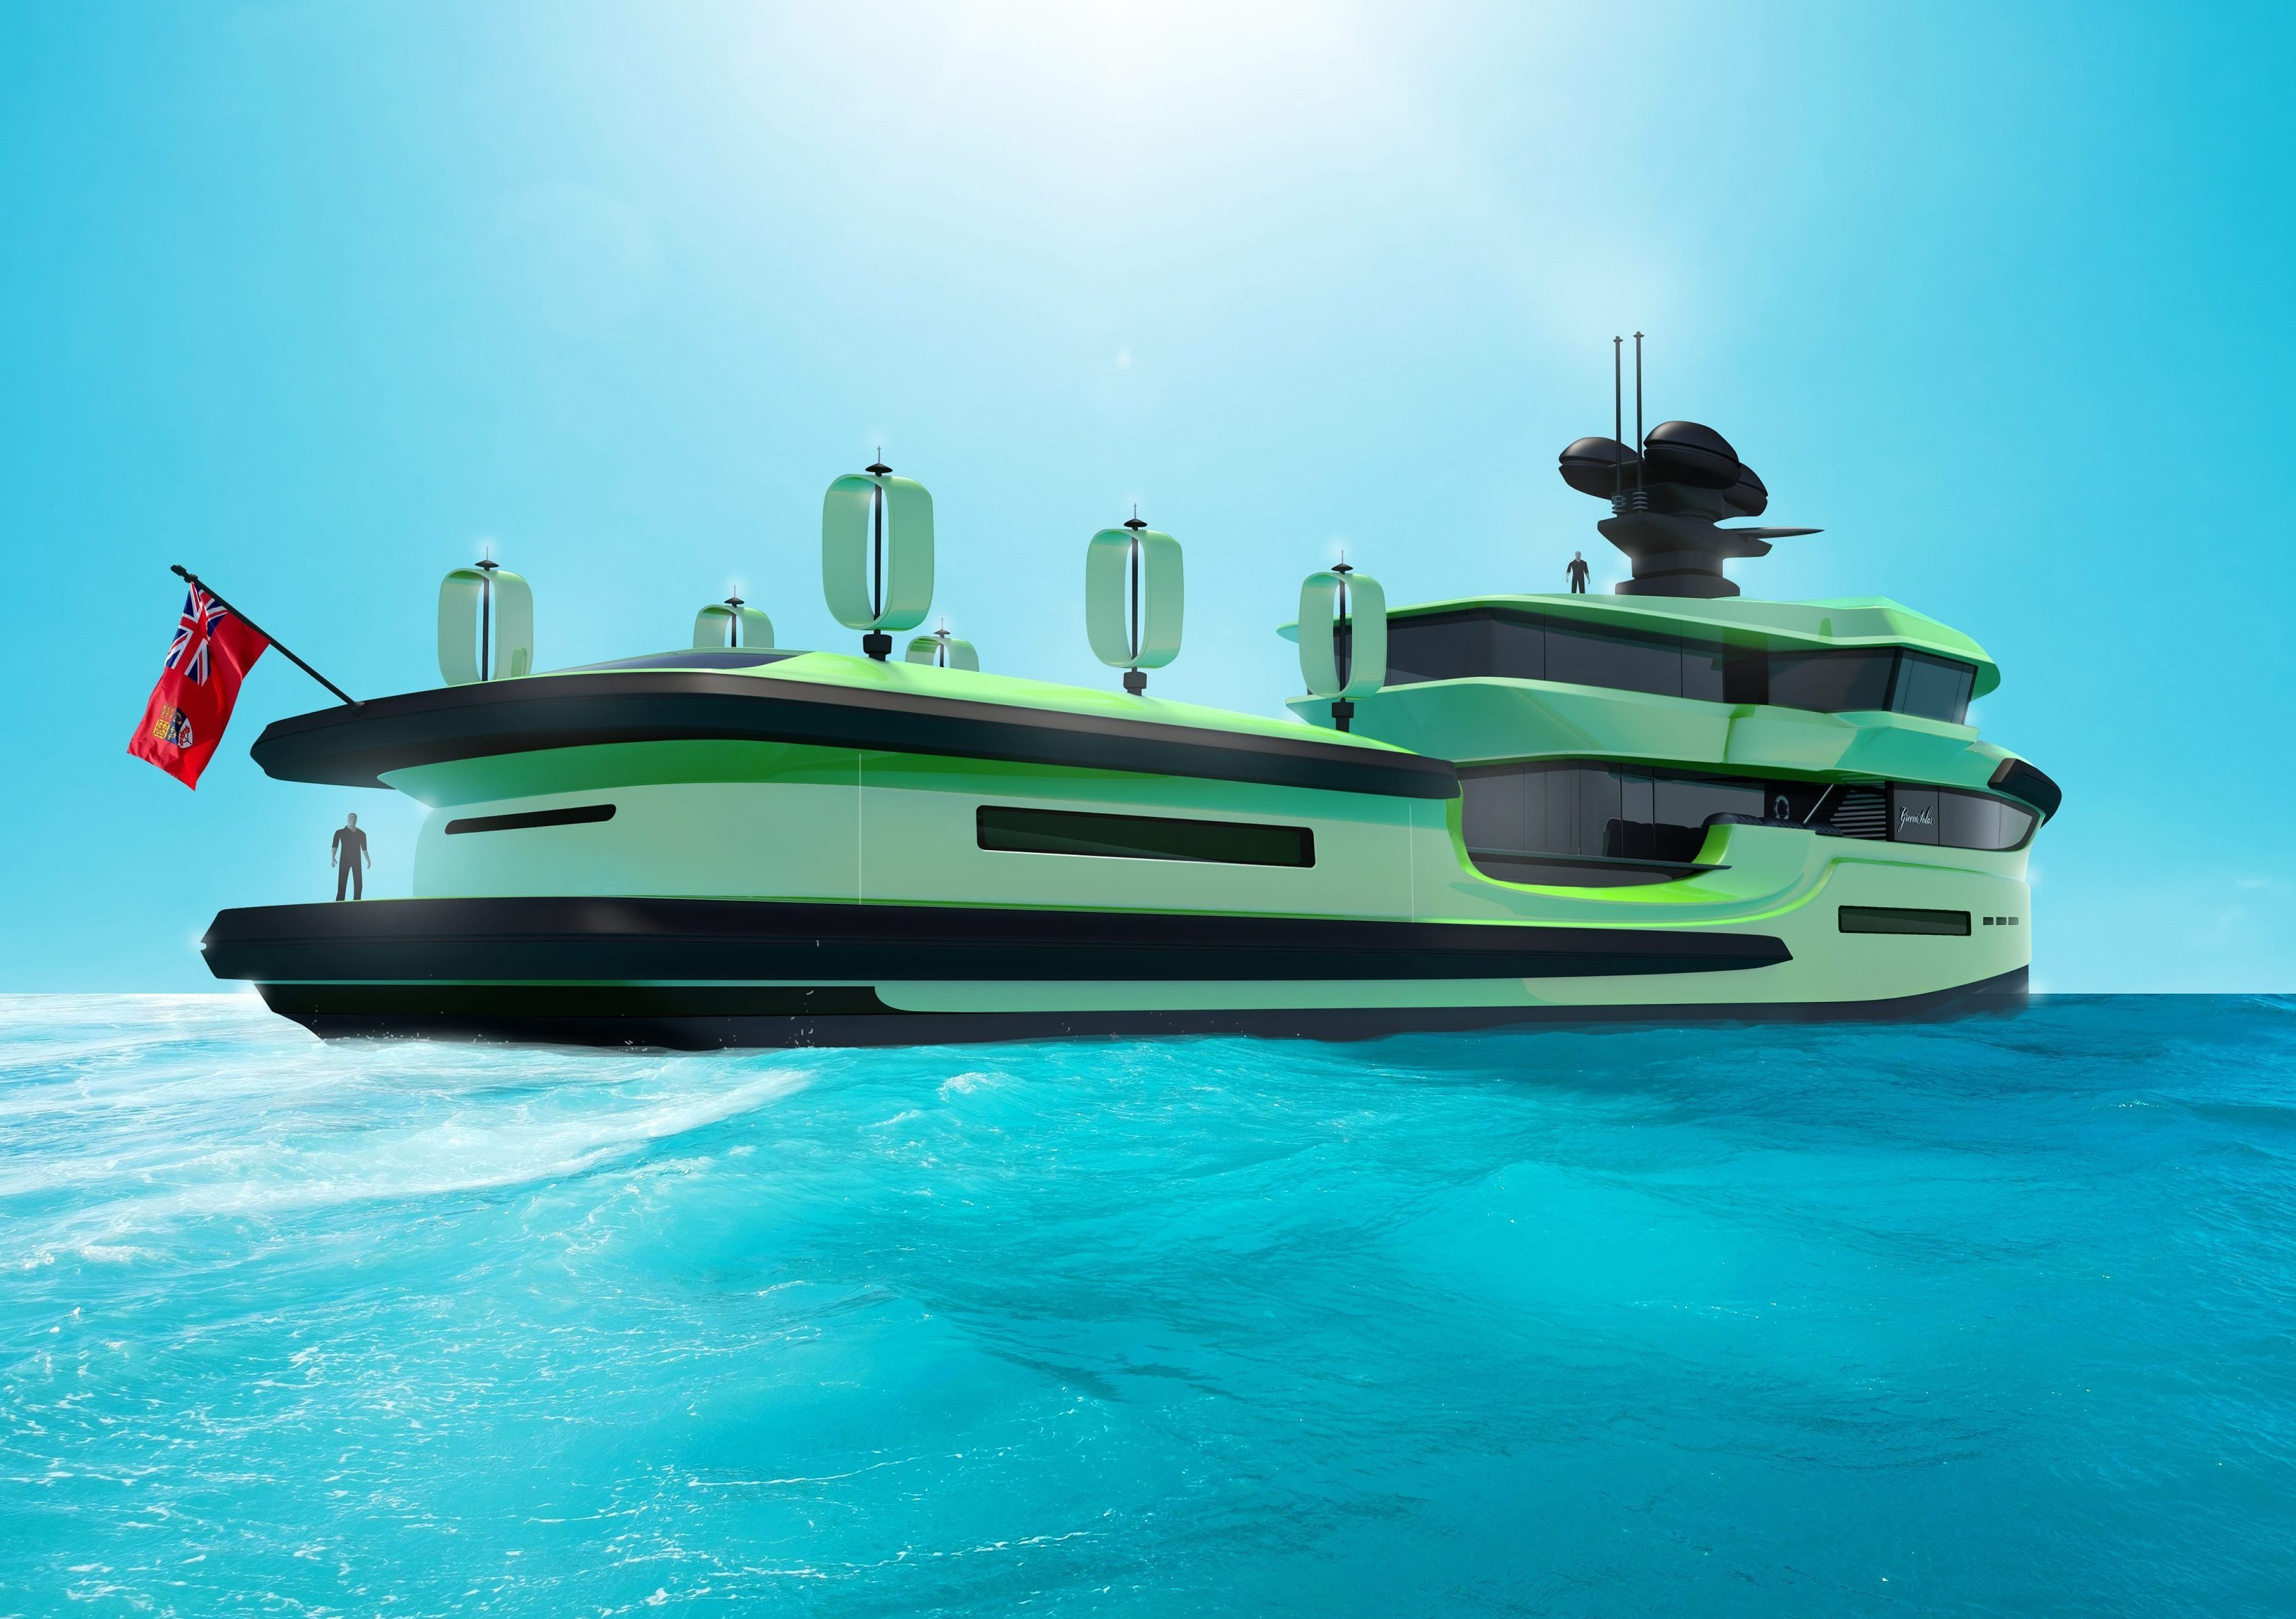 Green Expedition is covered in solar panels and wind turbines so she rarely has to return to port for fuel